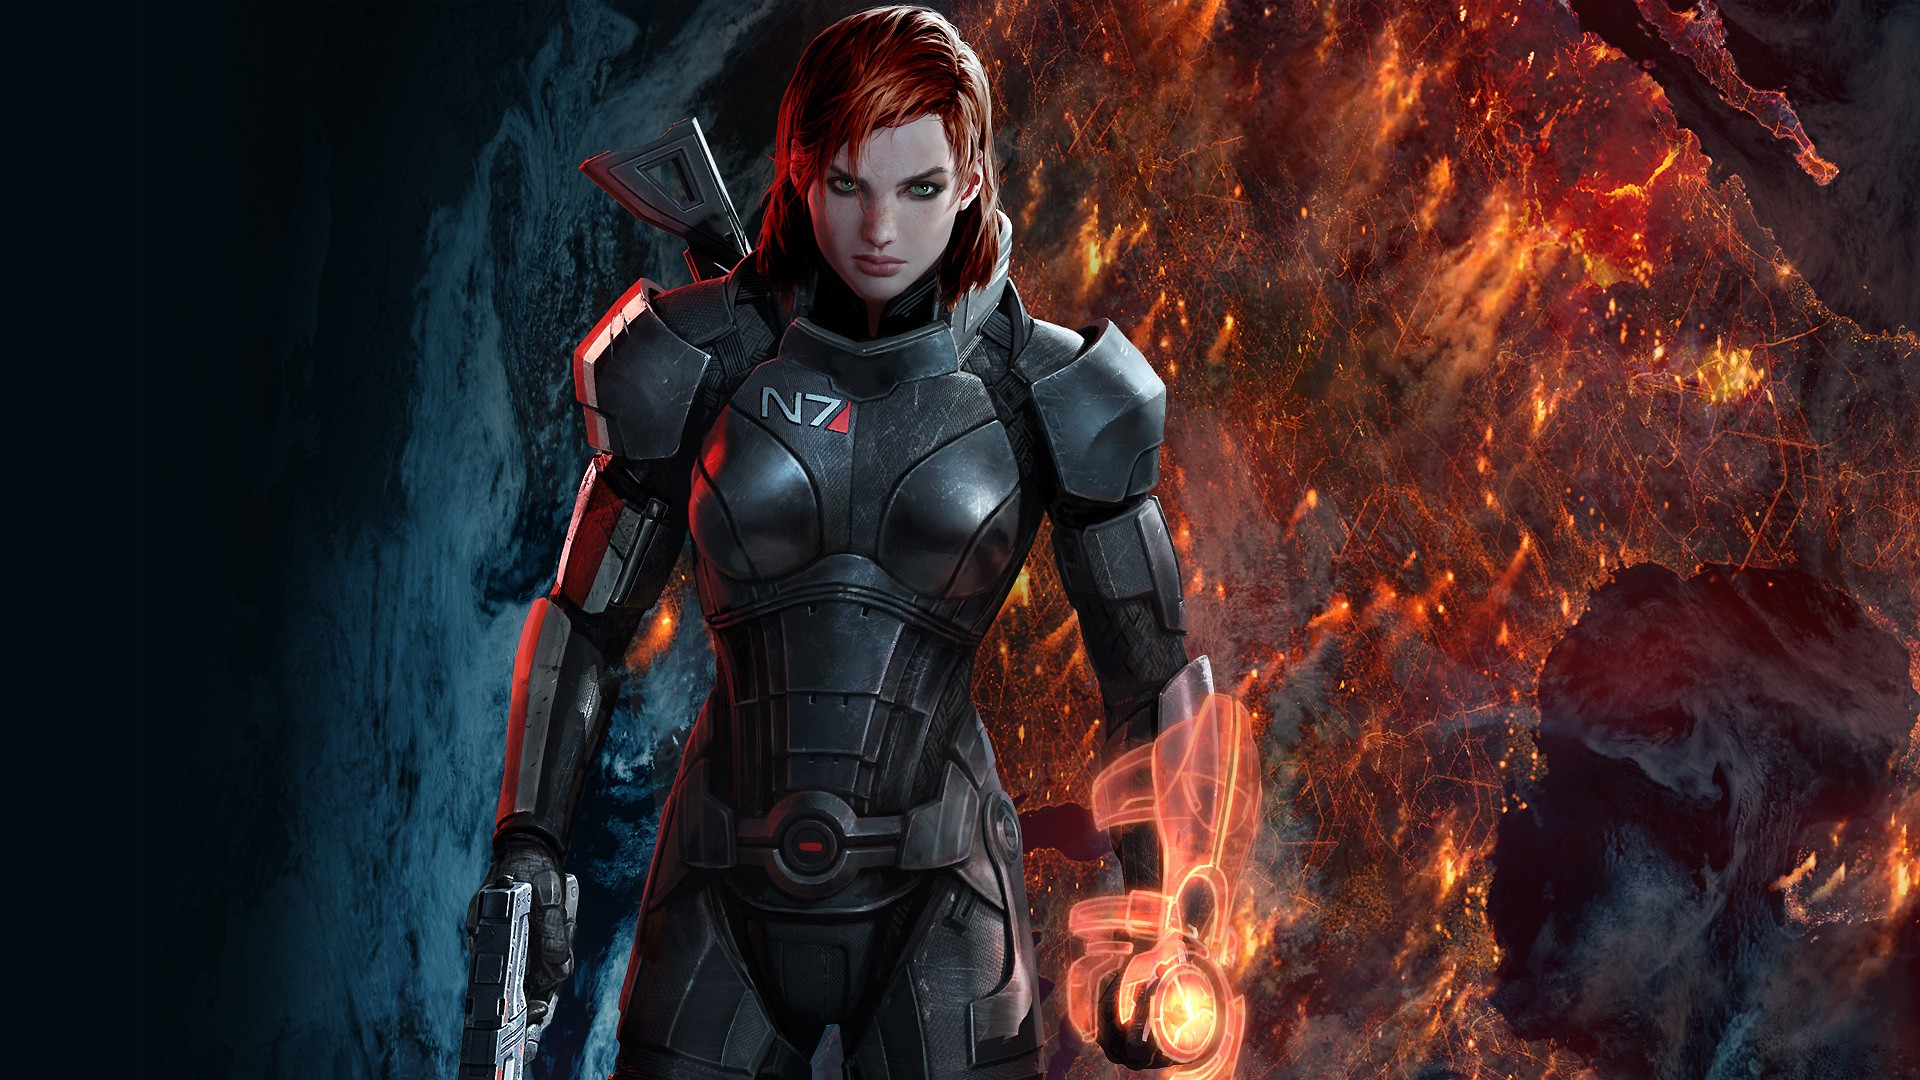 You can fight like a krogan, run like a leopard, but you'll never be better than Commander Shepard.